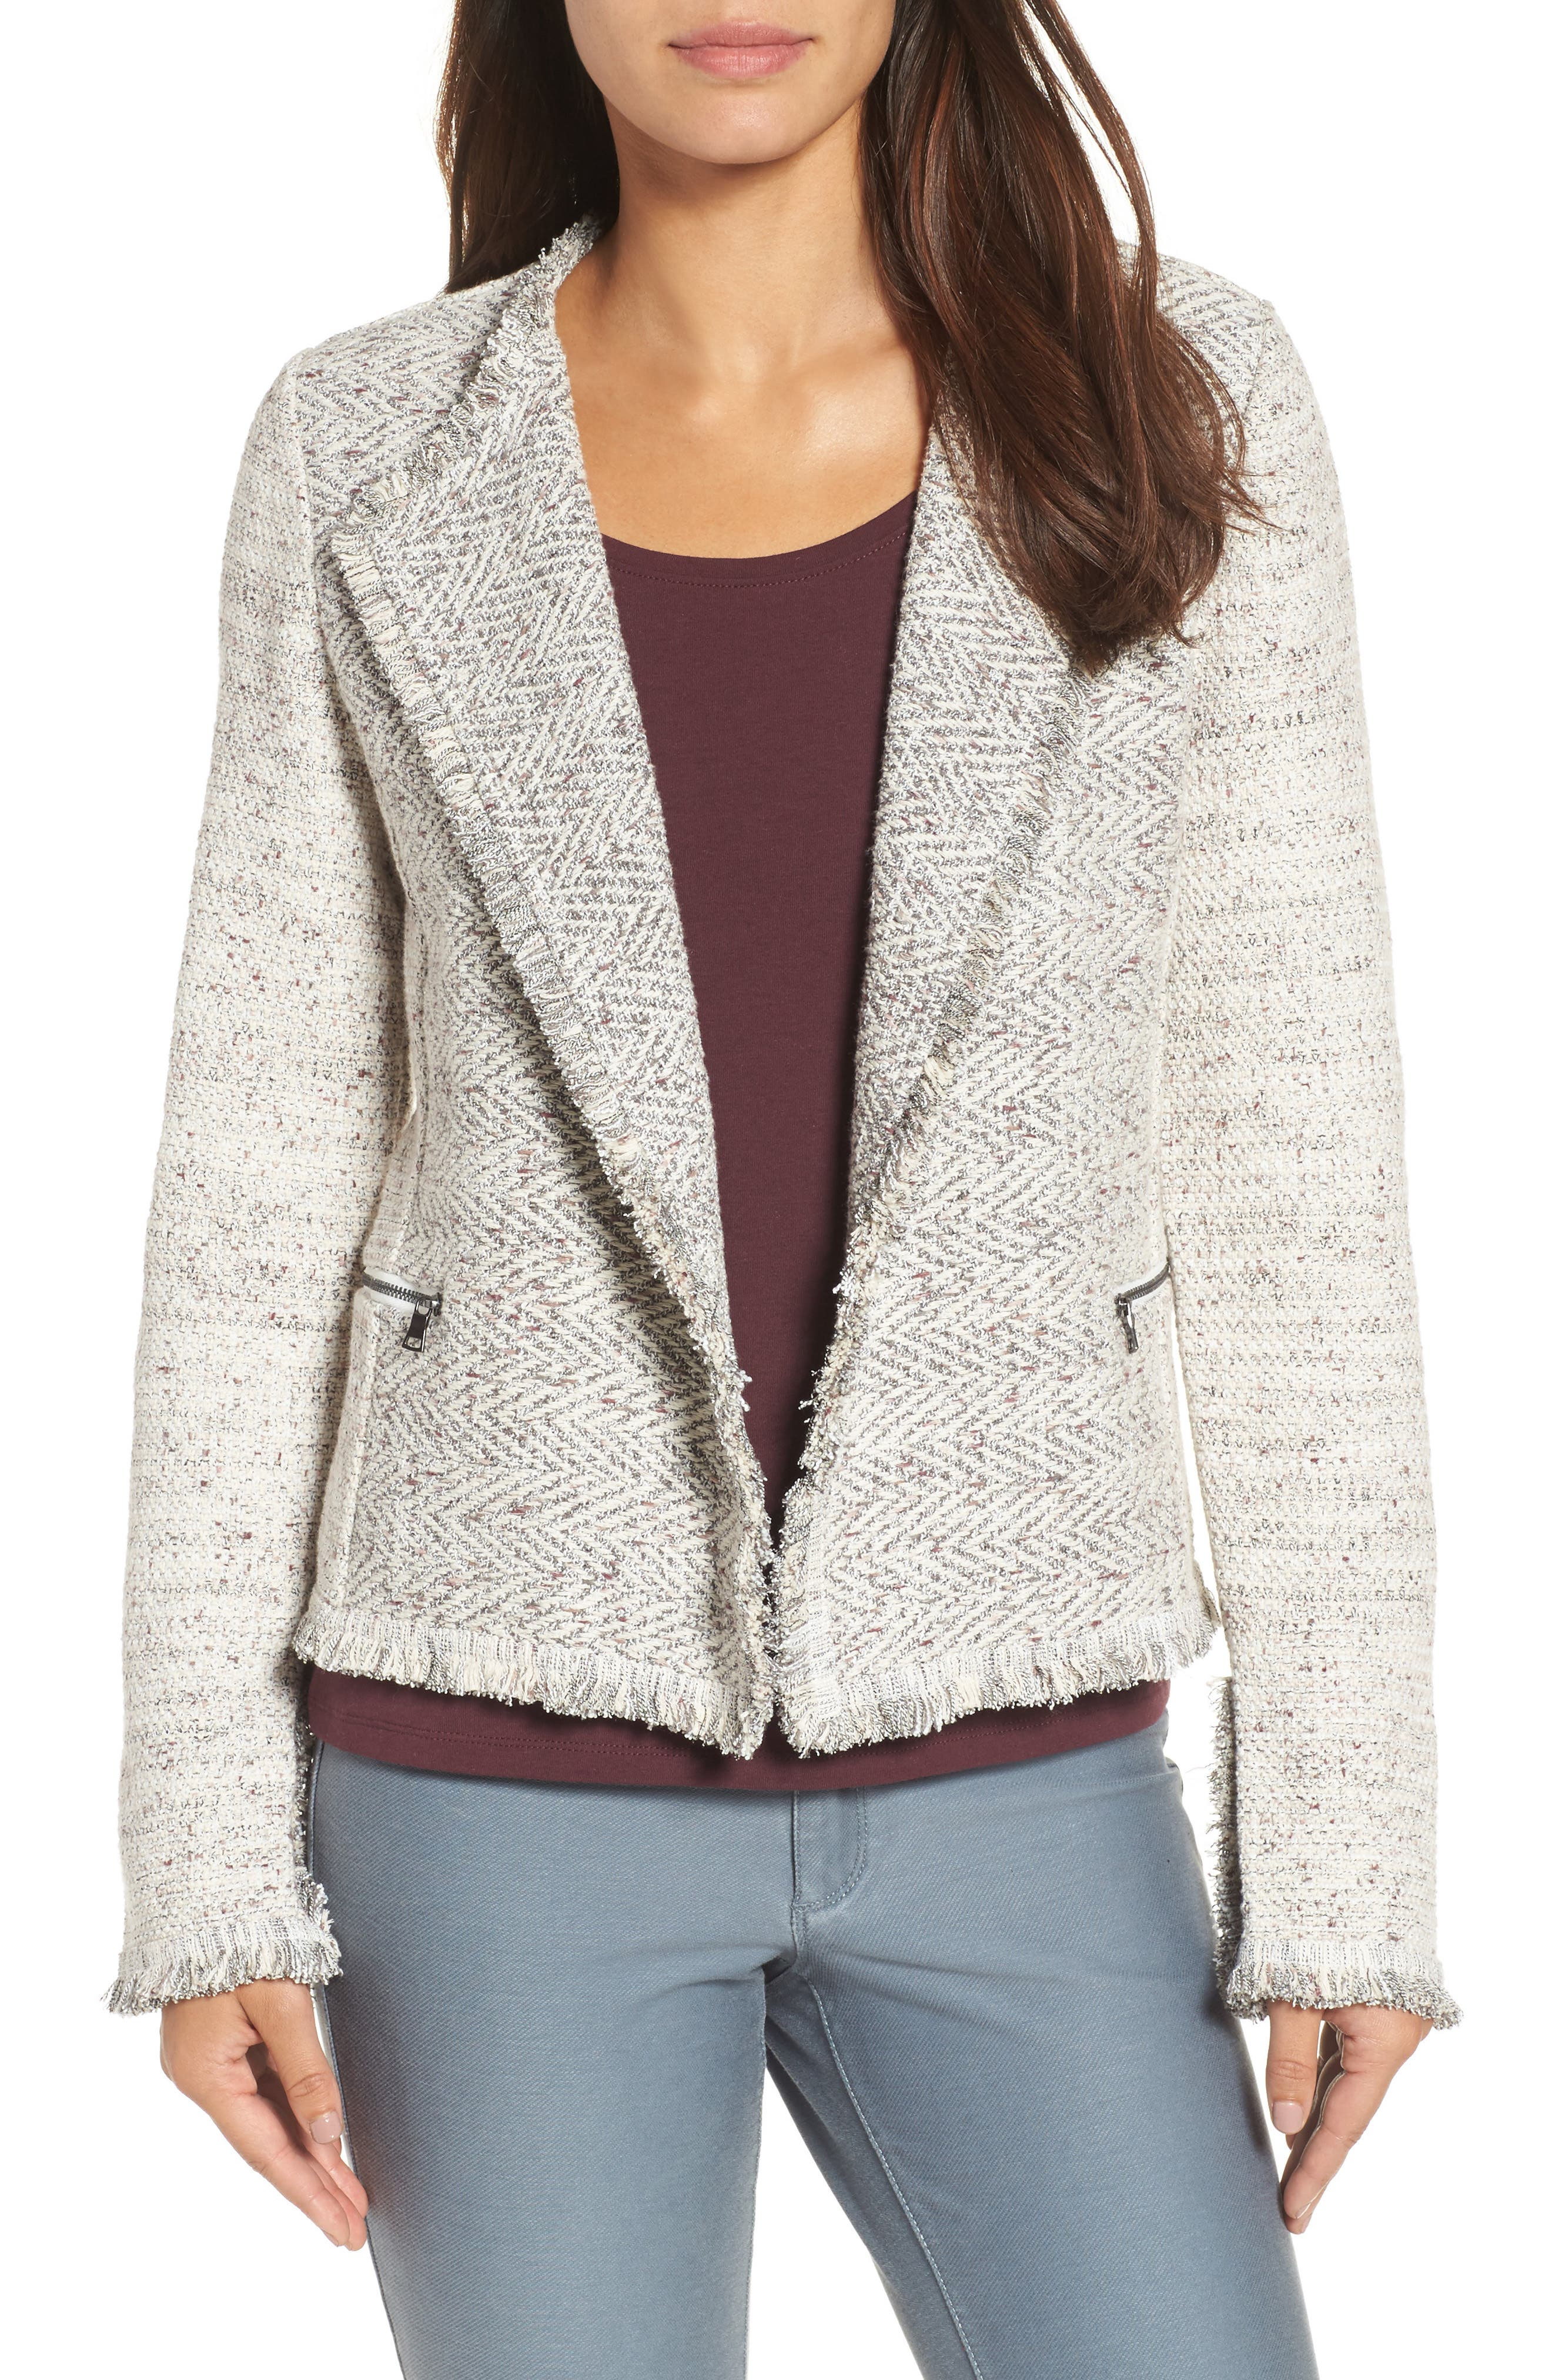 Chilled Tweed Jacket,                             Main thumbnail 1, color,                             090